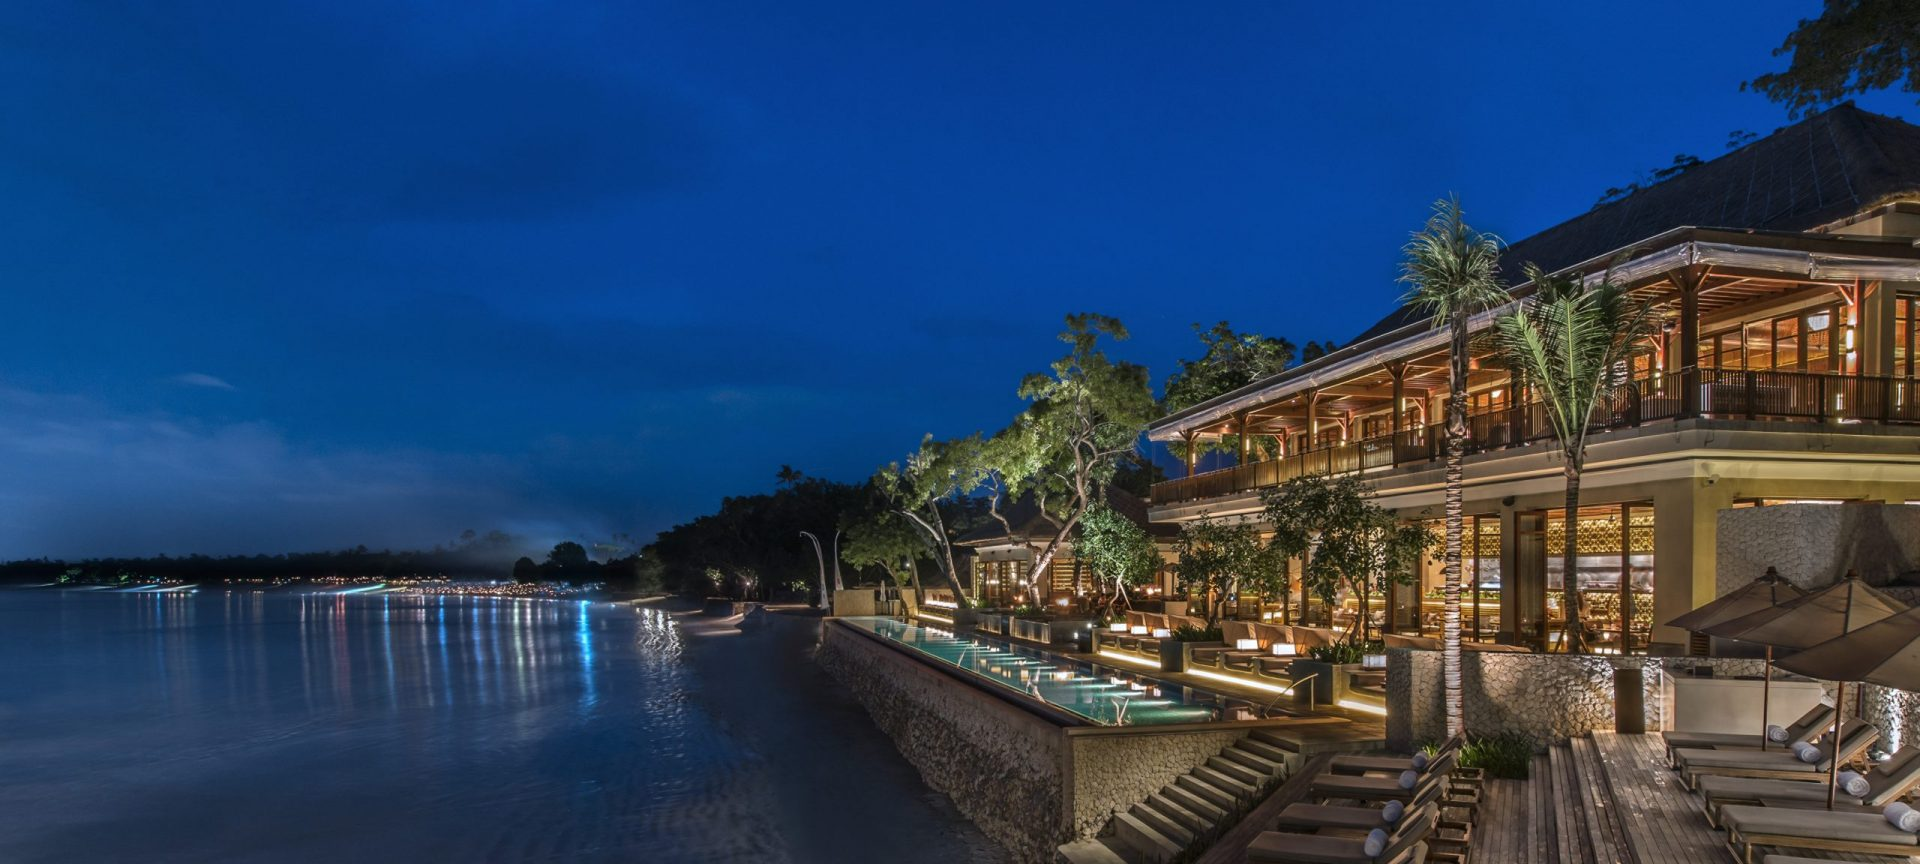 The Jimbaran Bay property at night by the Four Seasons Resort Bali a luxury property overlooking the sea